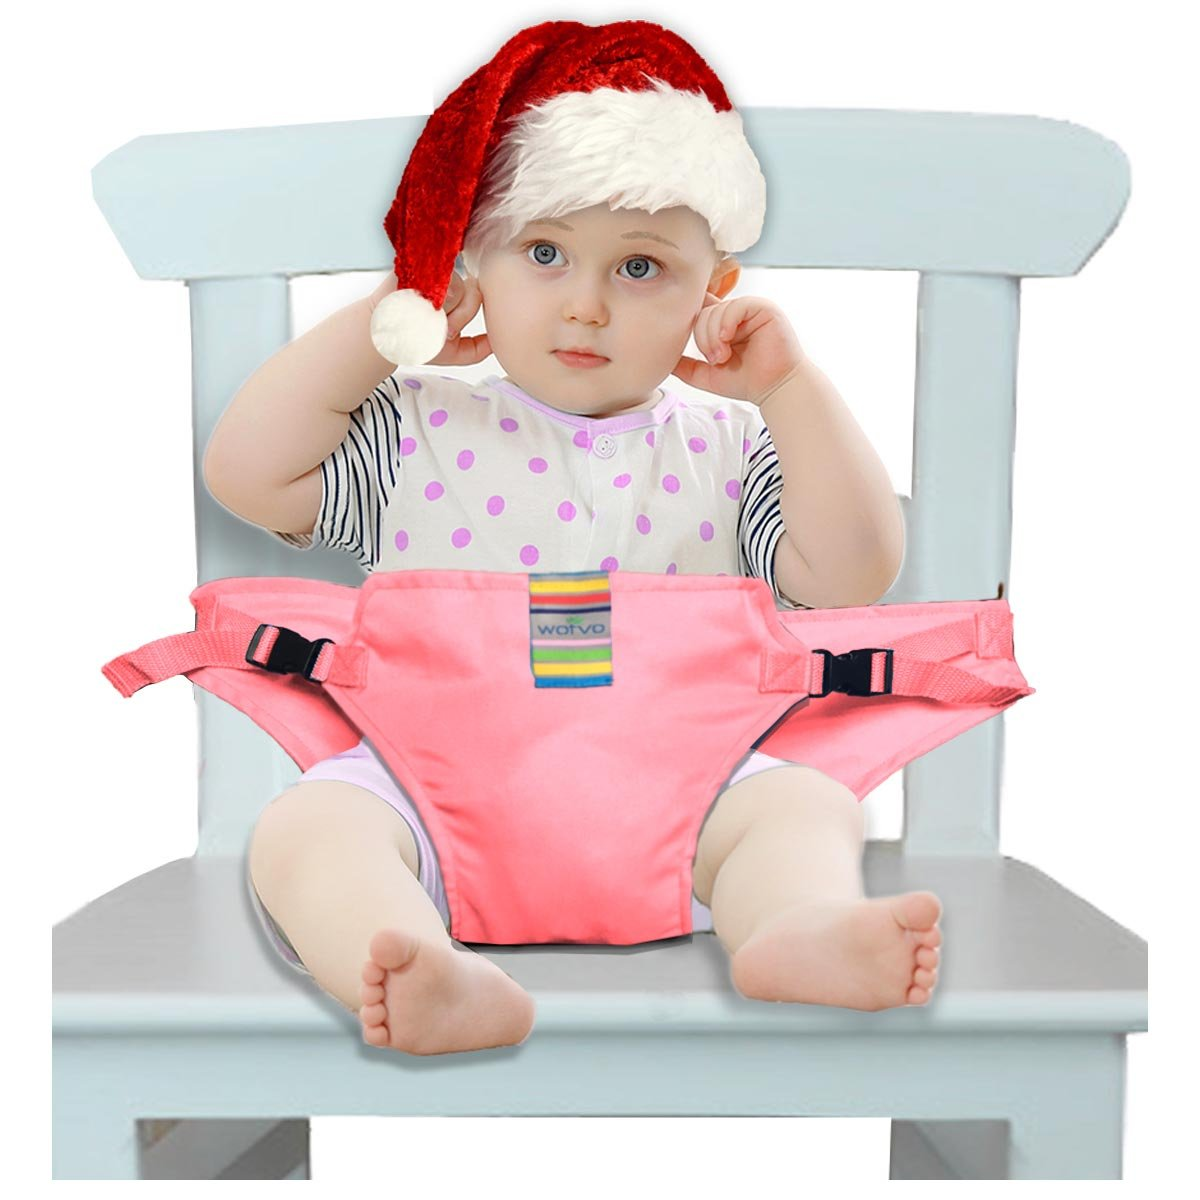 The Washable Portable Travel High Chair Booster Baby Seat with straps Toddler Safety Harness Baby feeding the strap (6 Color) (Pink) Hangzhou Wo yu Trading Co. Ltd zyd-01A